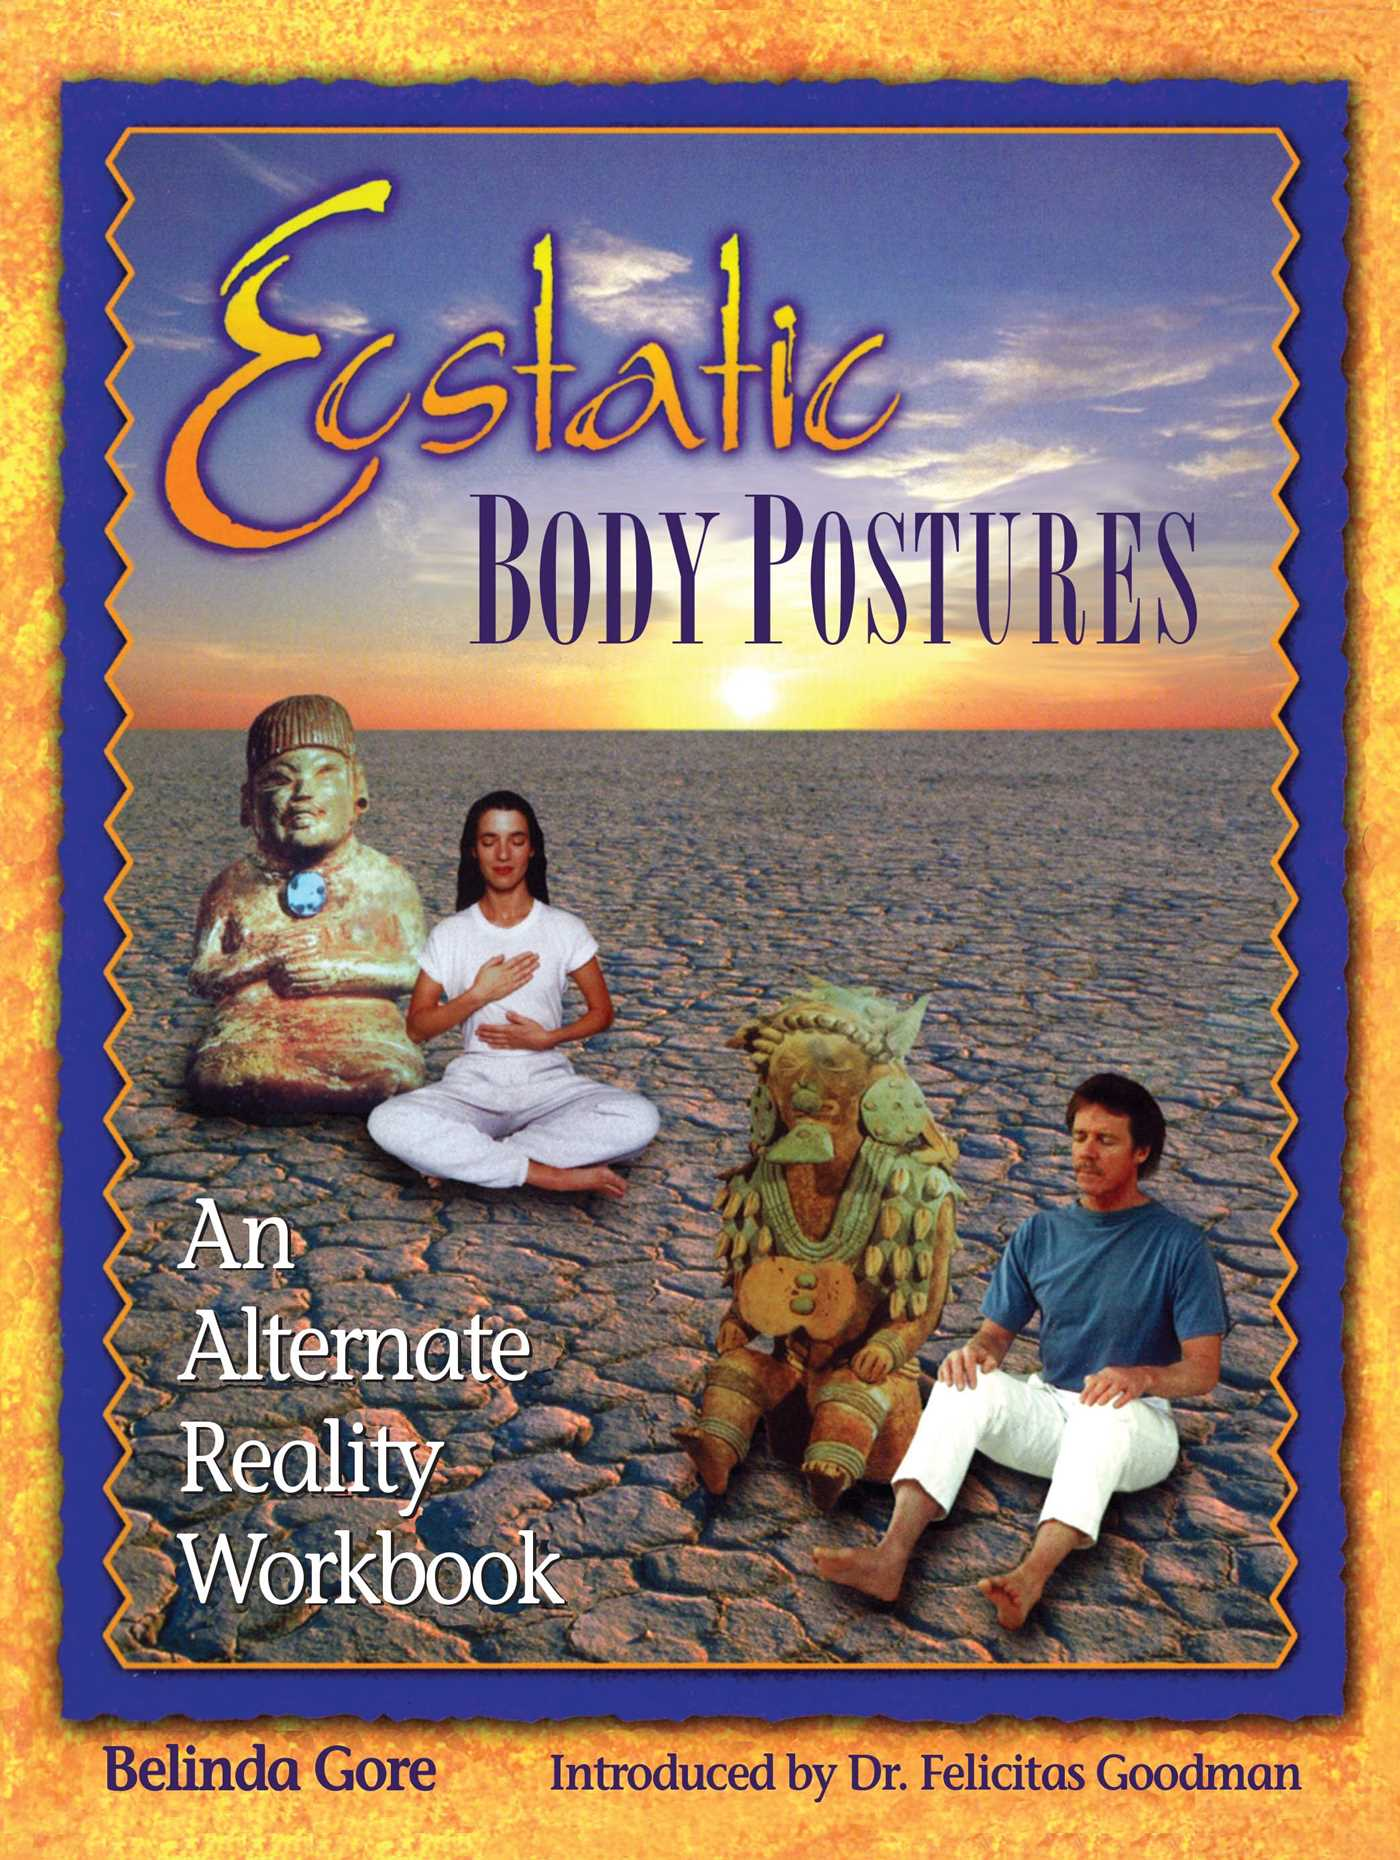 Ecstatic-body-postures-9781879181229_hr